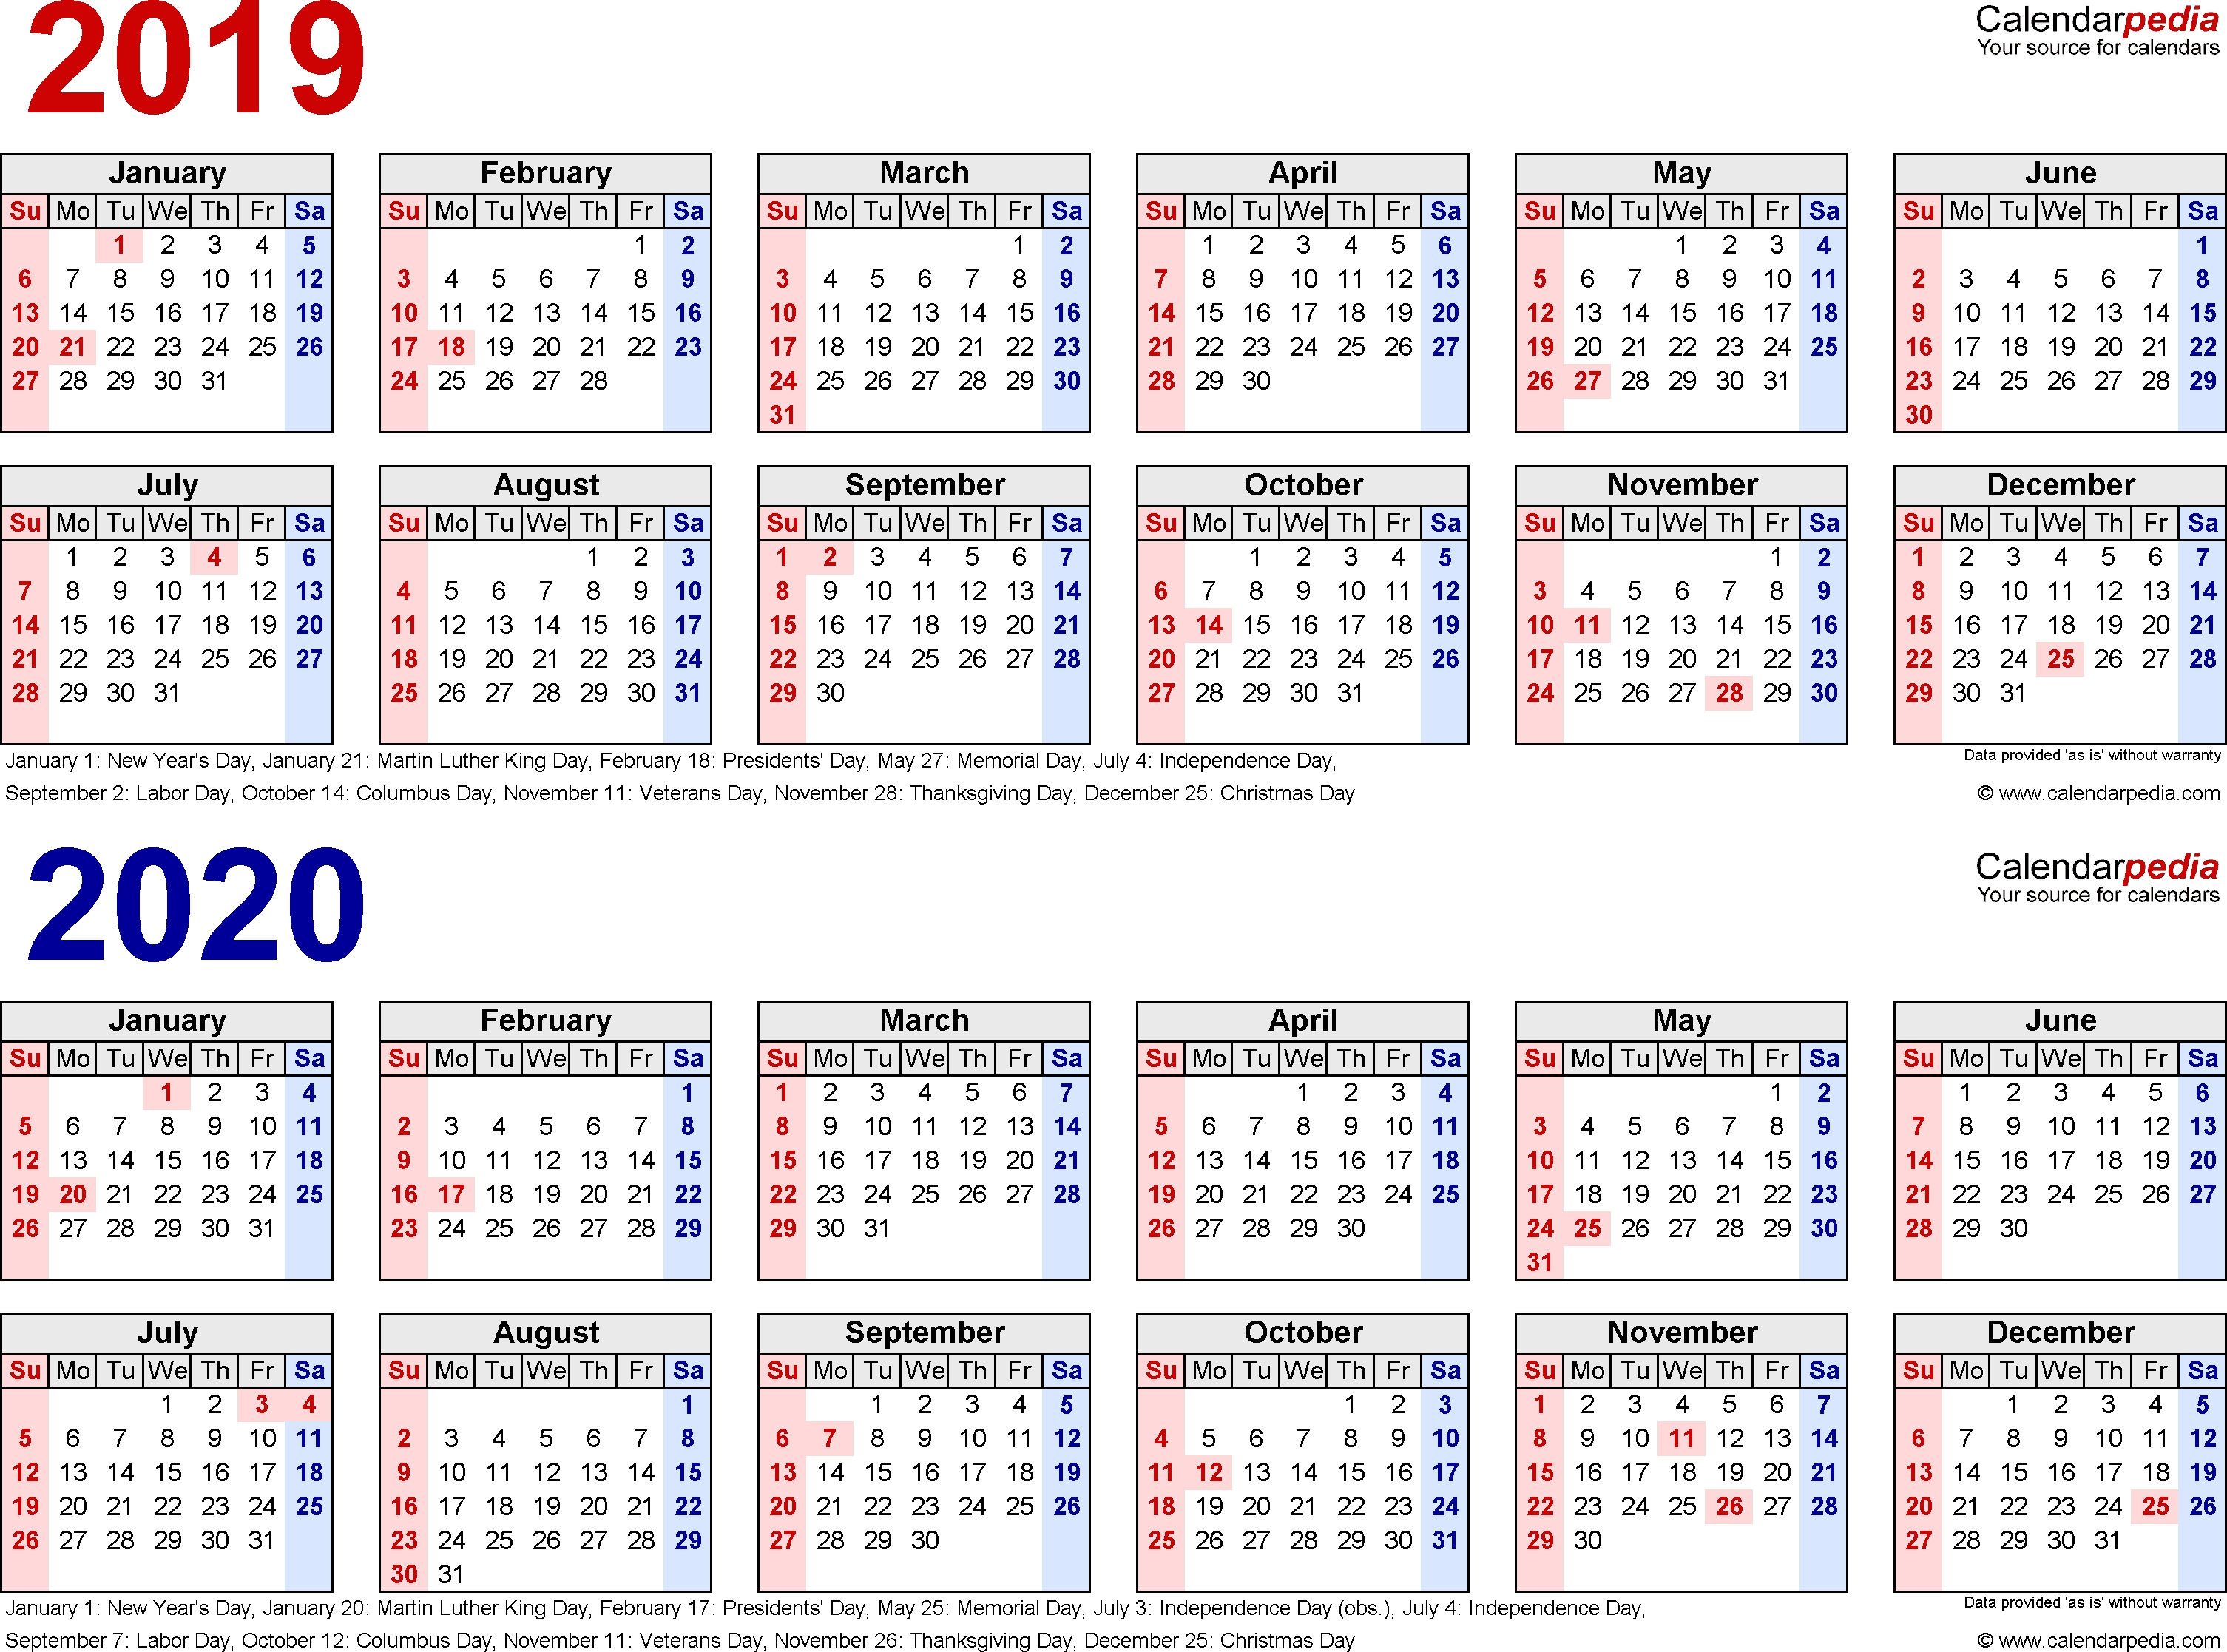 2019-2020 Calendar - Free Printable Two-Year Excel Calendars with regard to One Page 2 Years Calendar 2019 2020 With Week Number